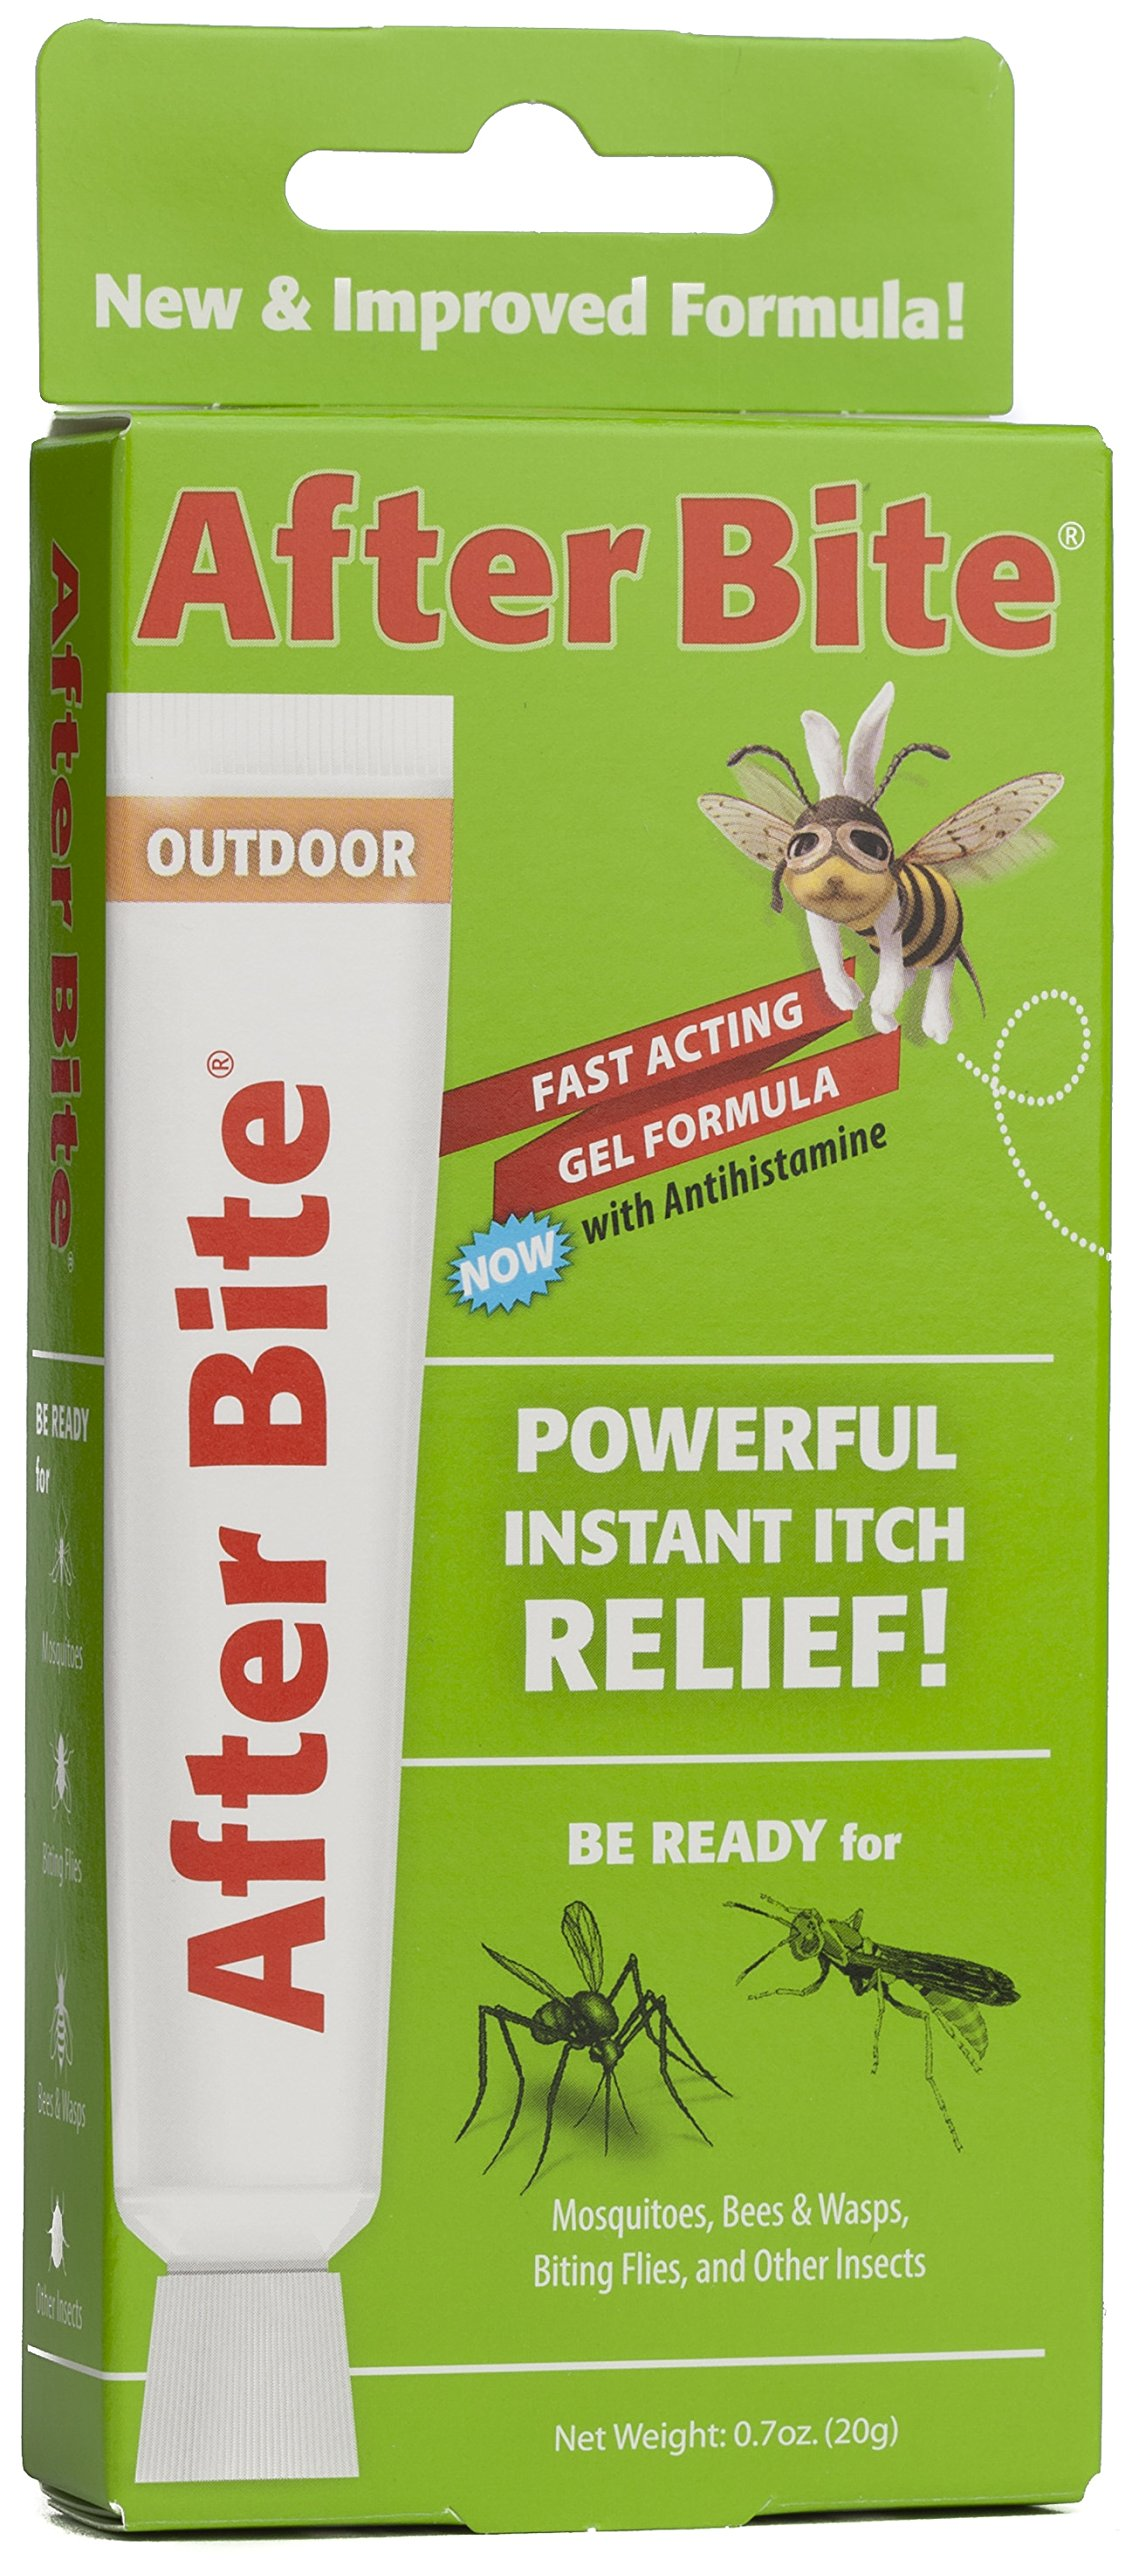 After Bite Outdoor Itch Relief, 0.7 oz (Pack of 4) by After Bite